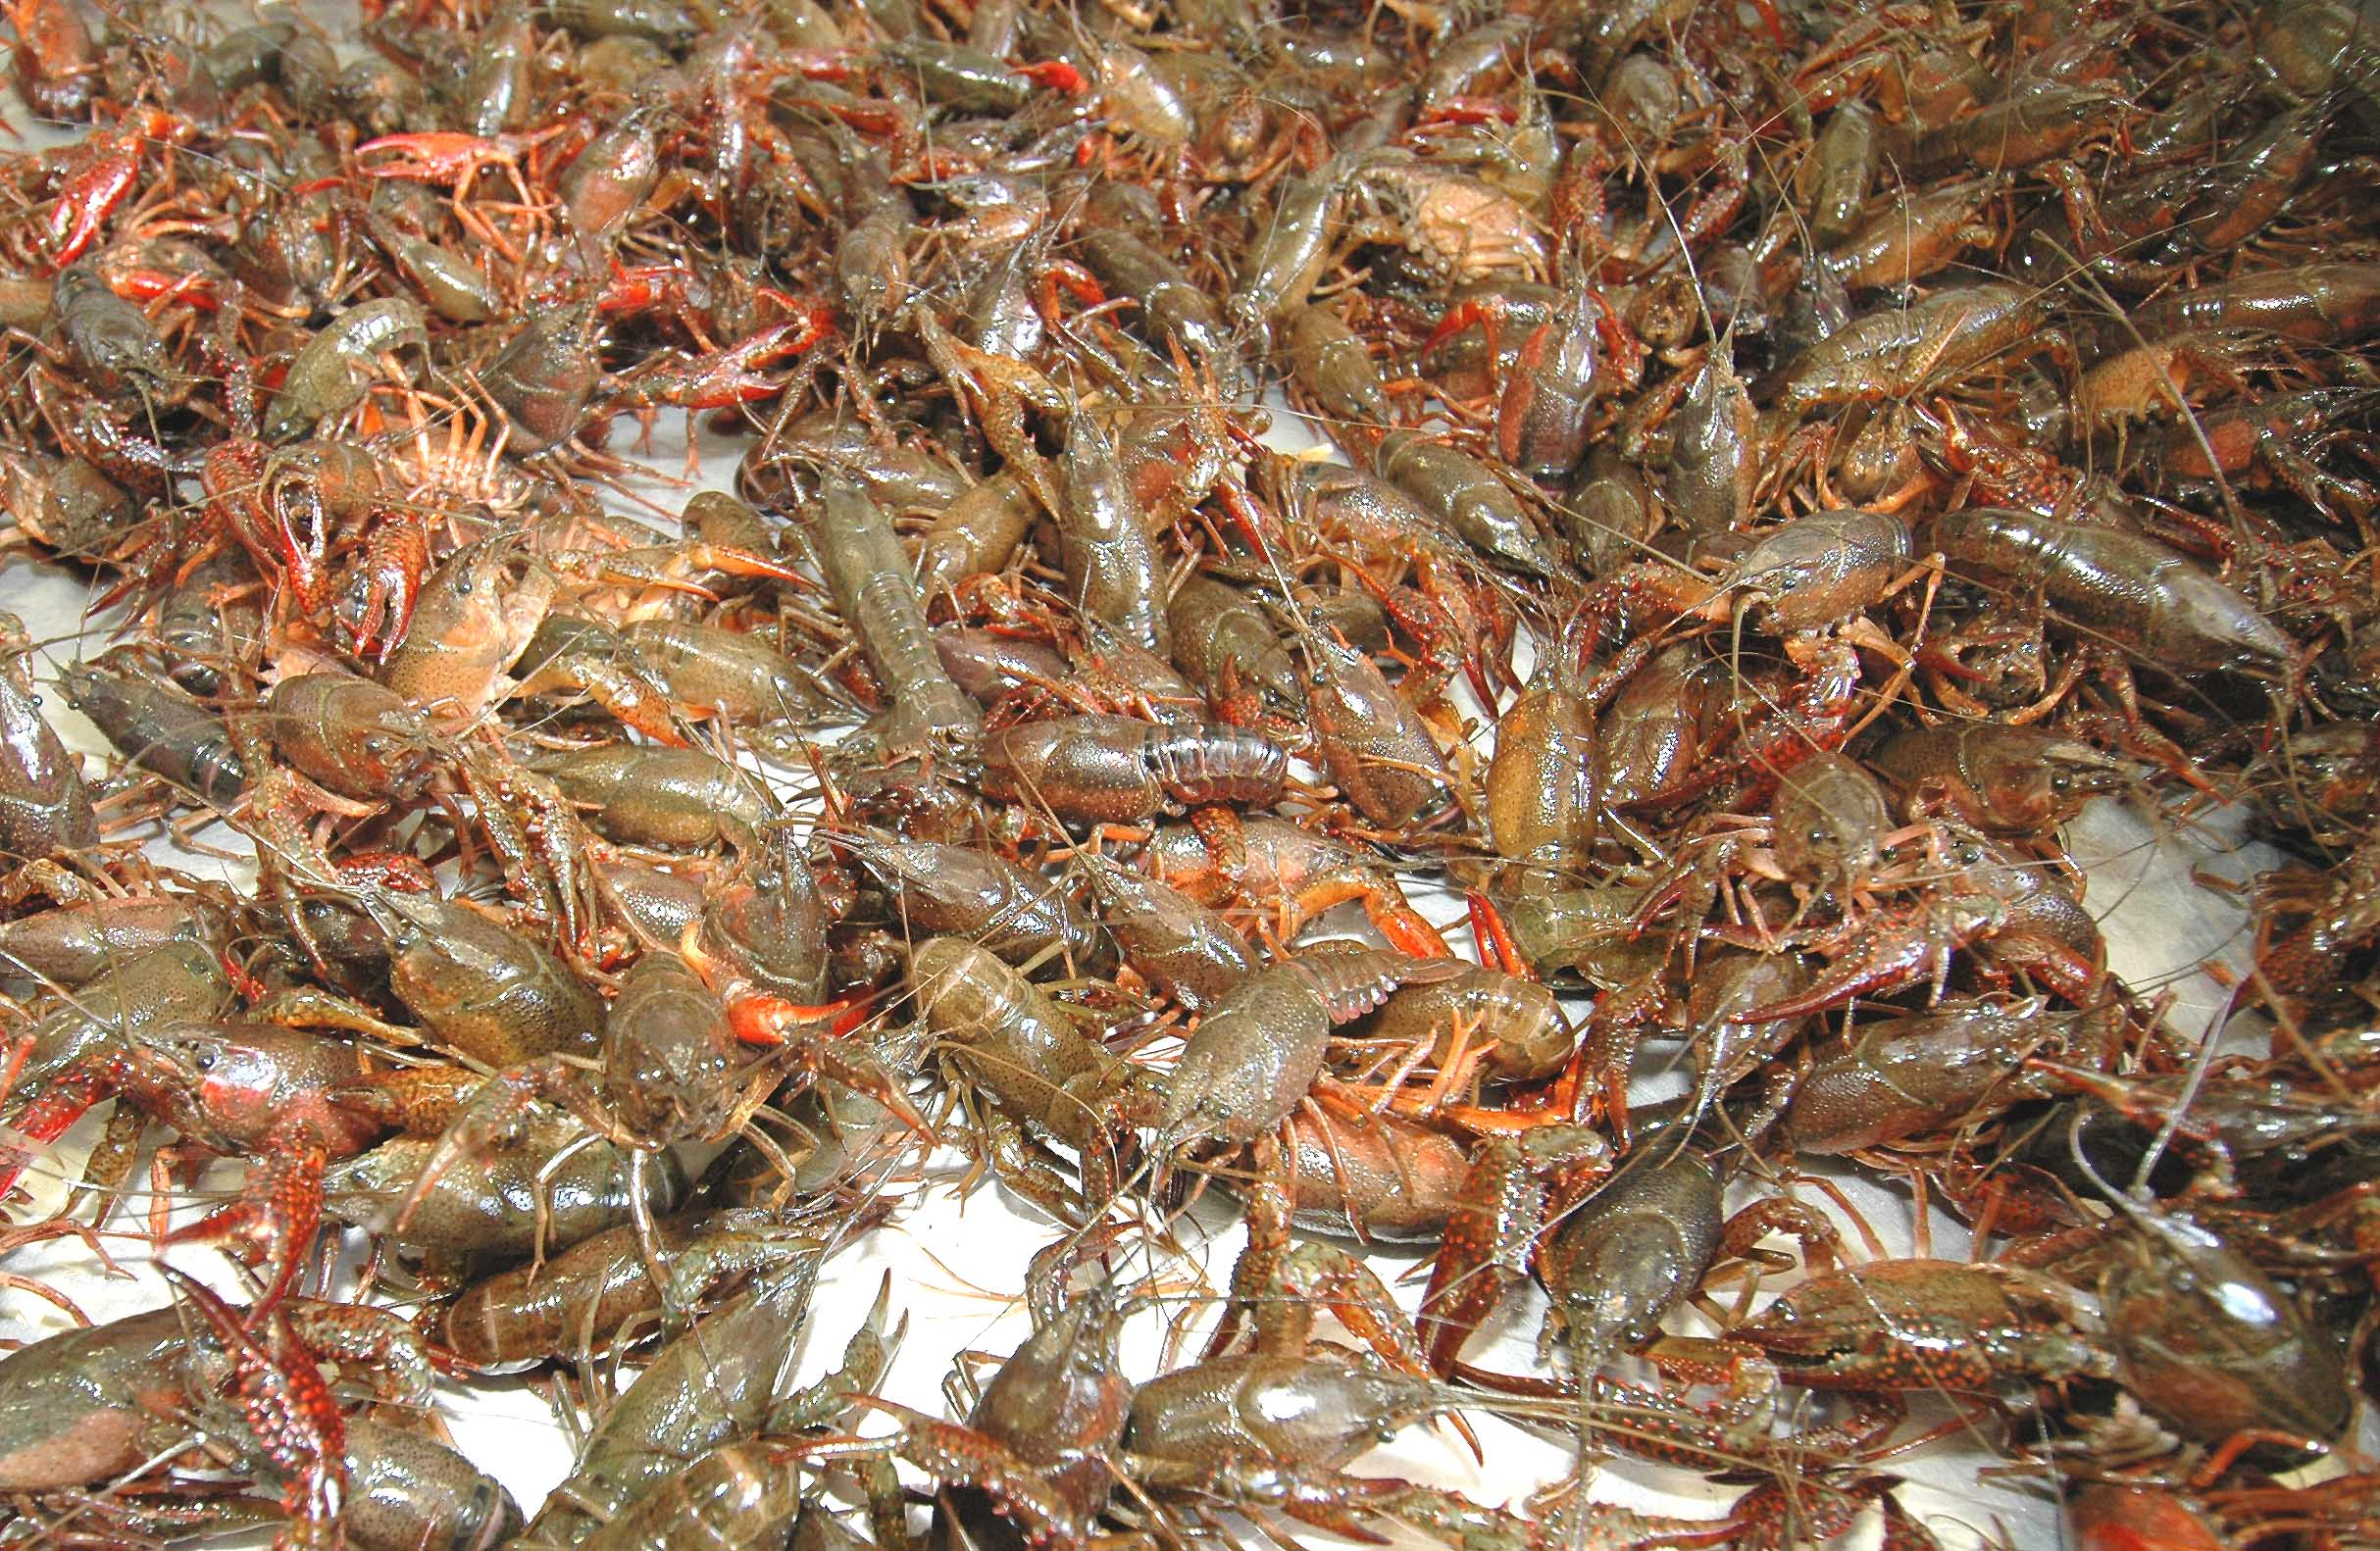 Floodwaters can affect water quality in crawfish ponds